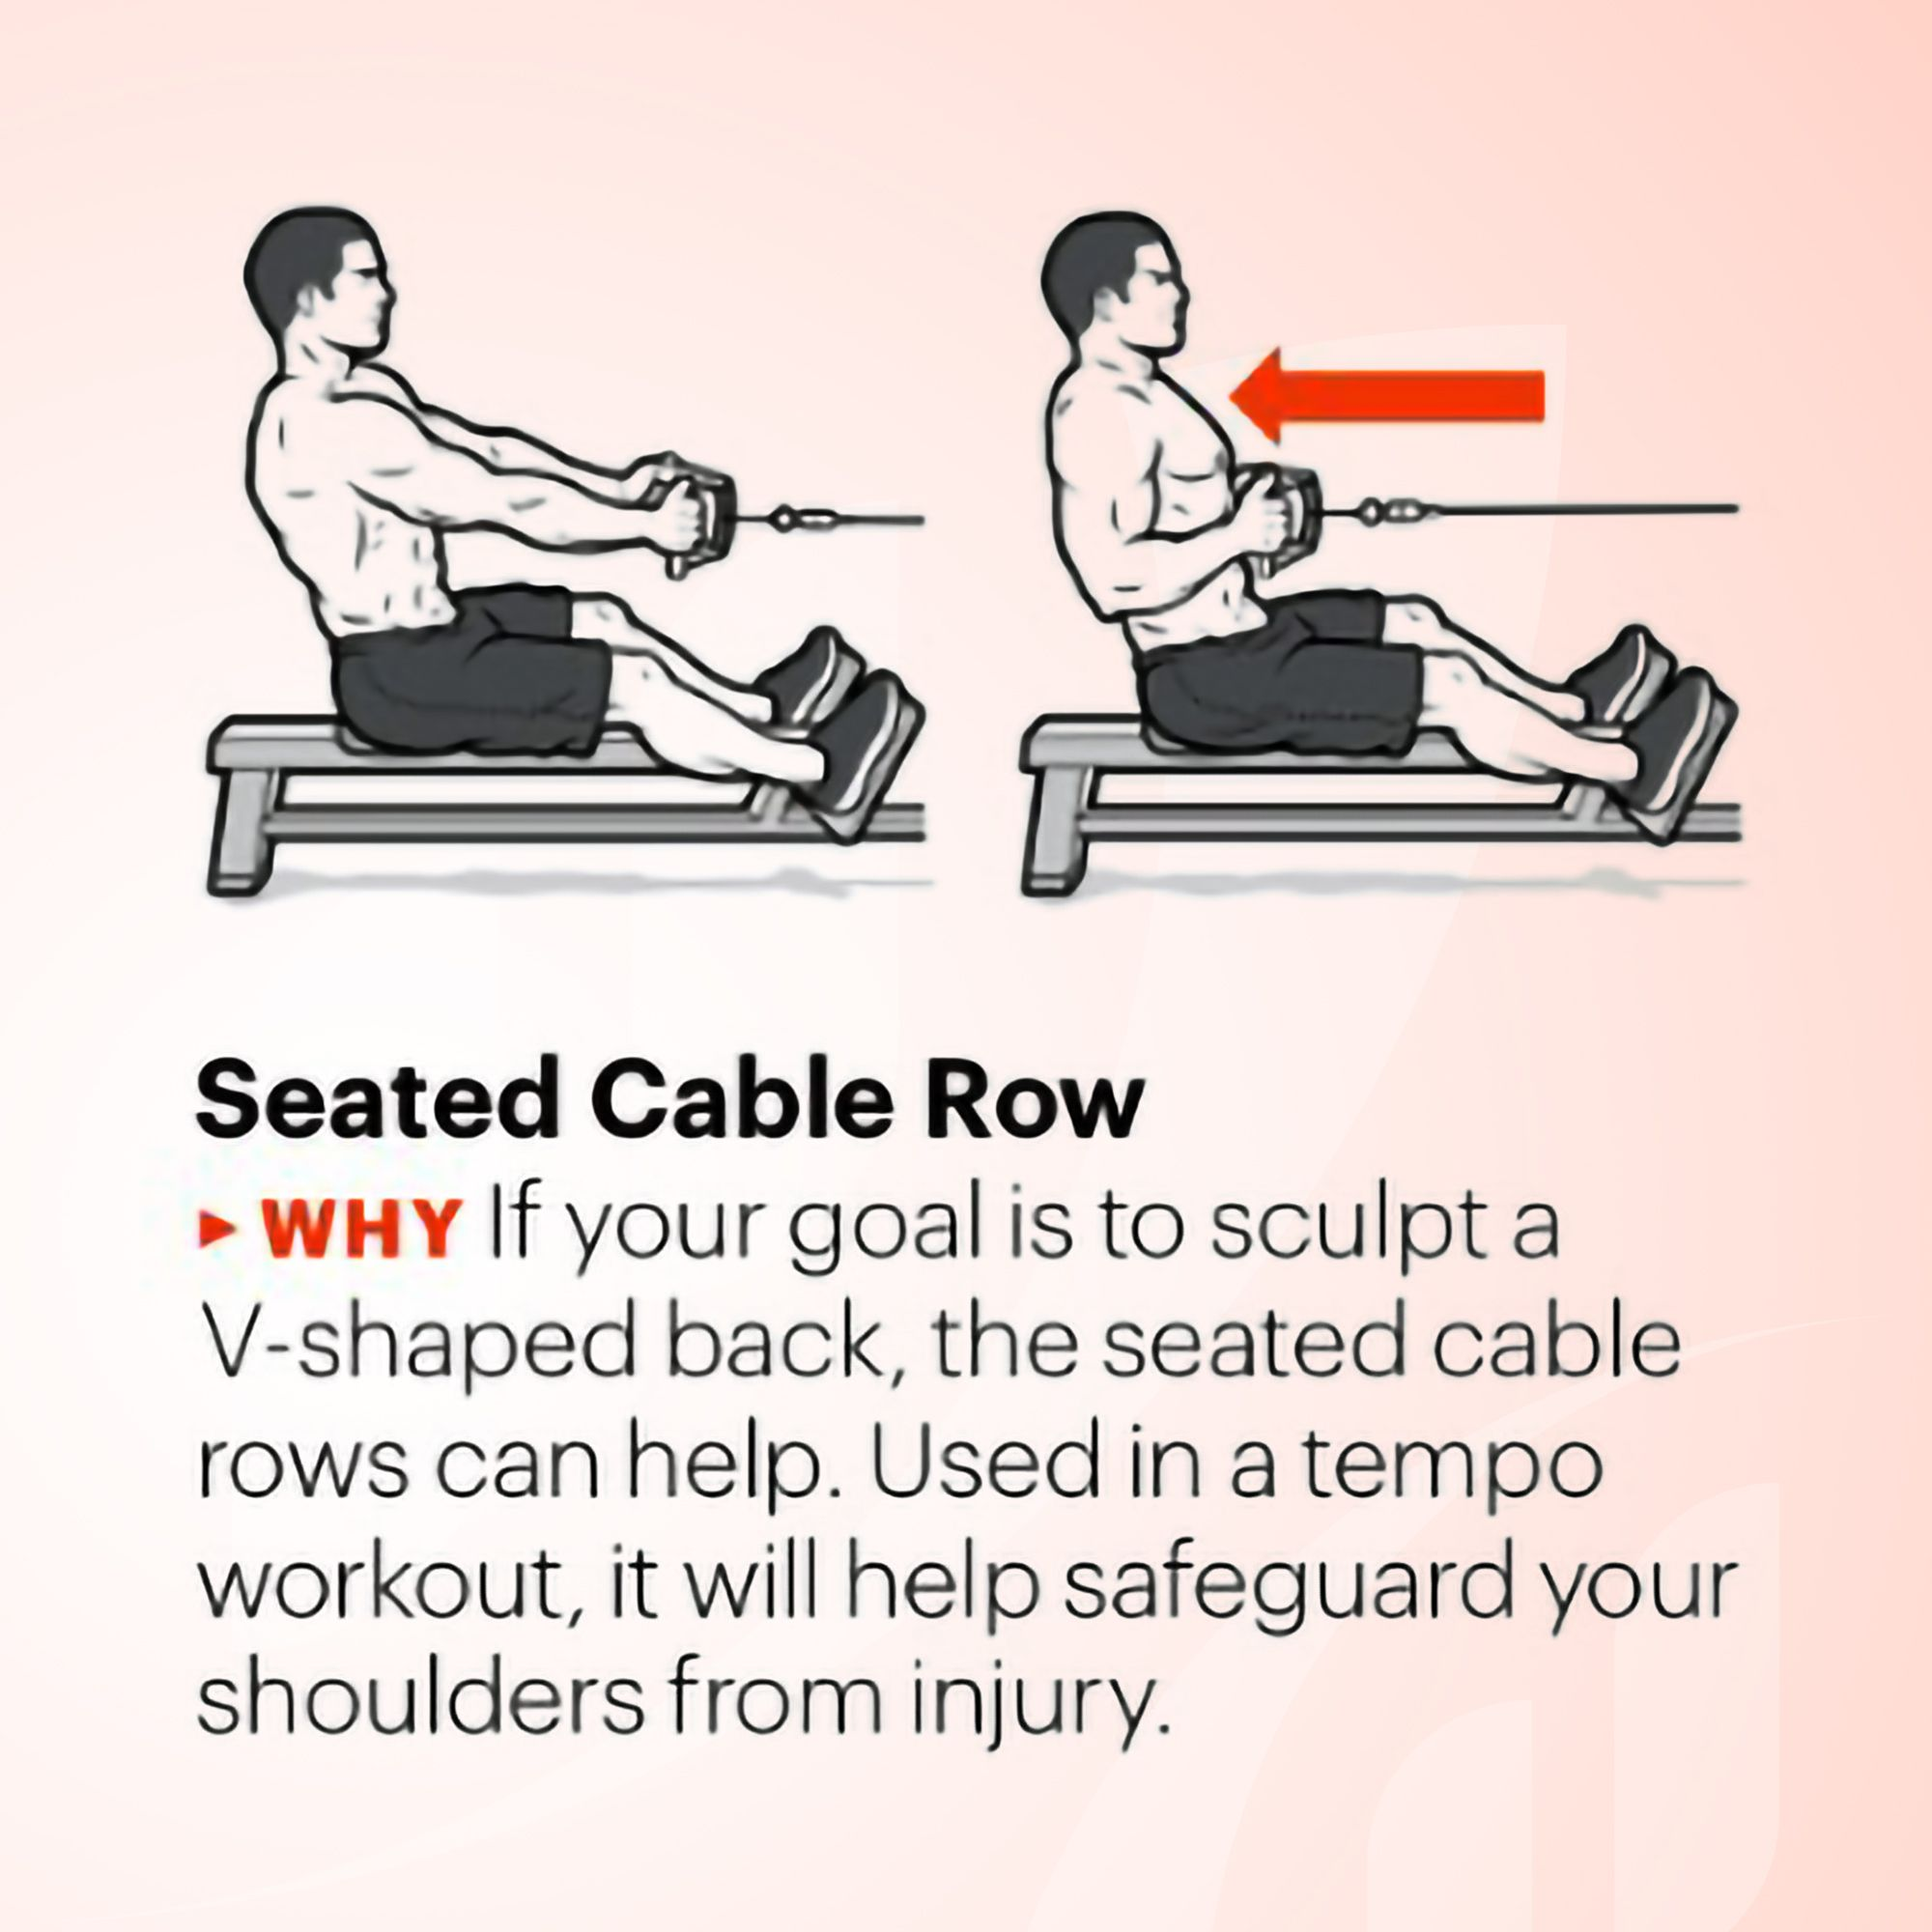 Seated Cable Row 💪 If your goal is to sculpt a Vshaped